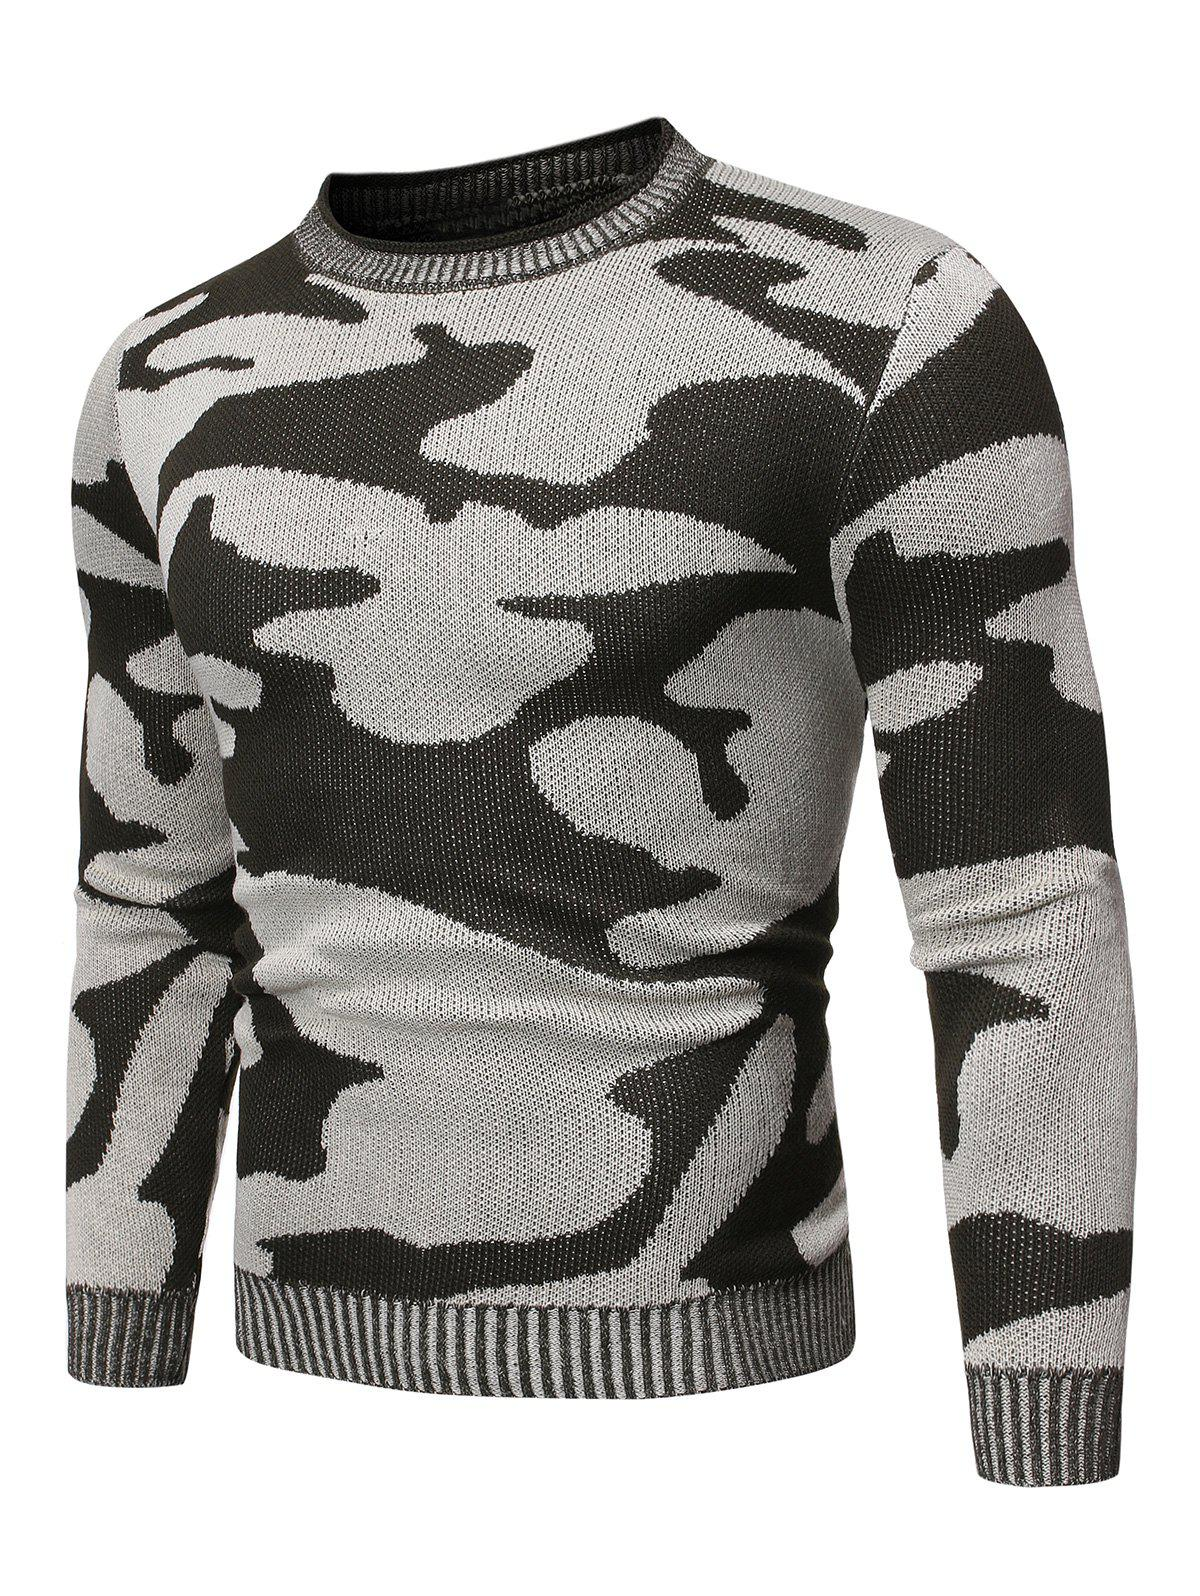 Chic Camo Pattern Long Sleeves Sweater